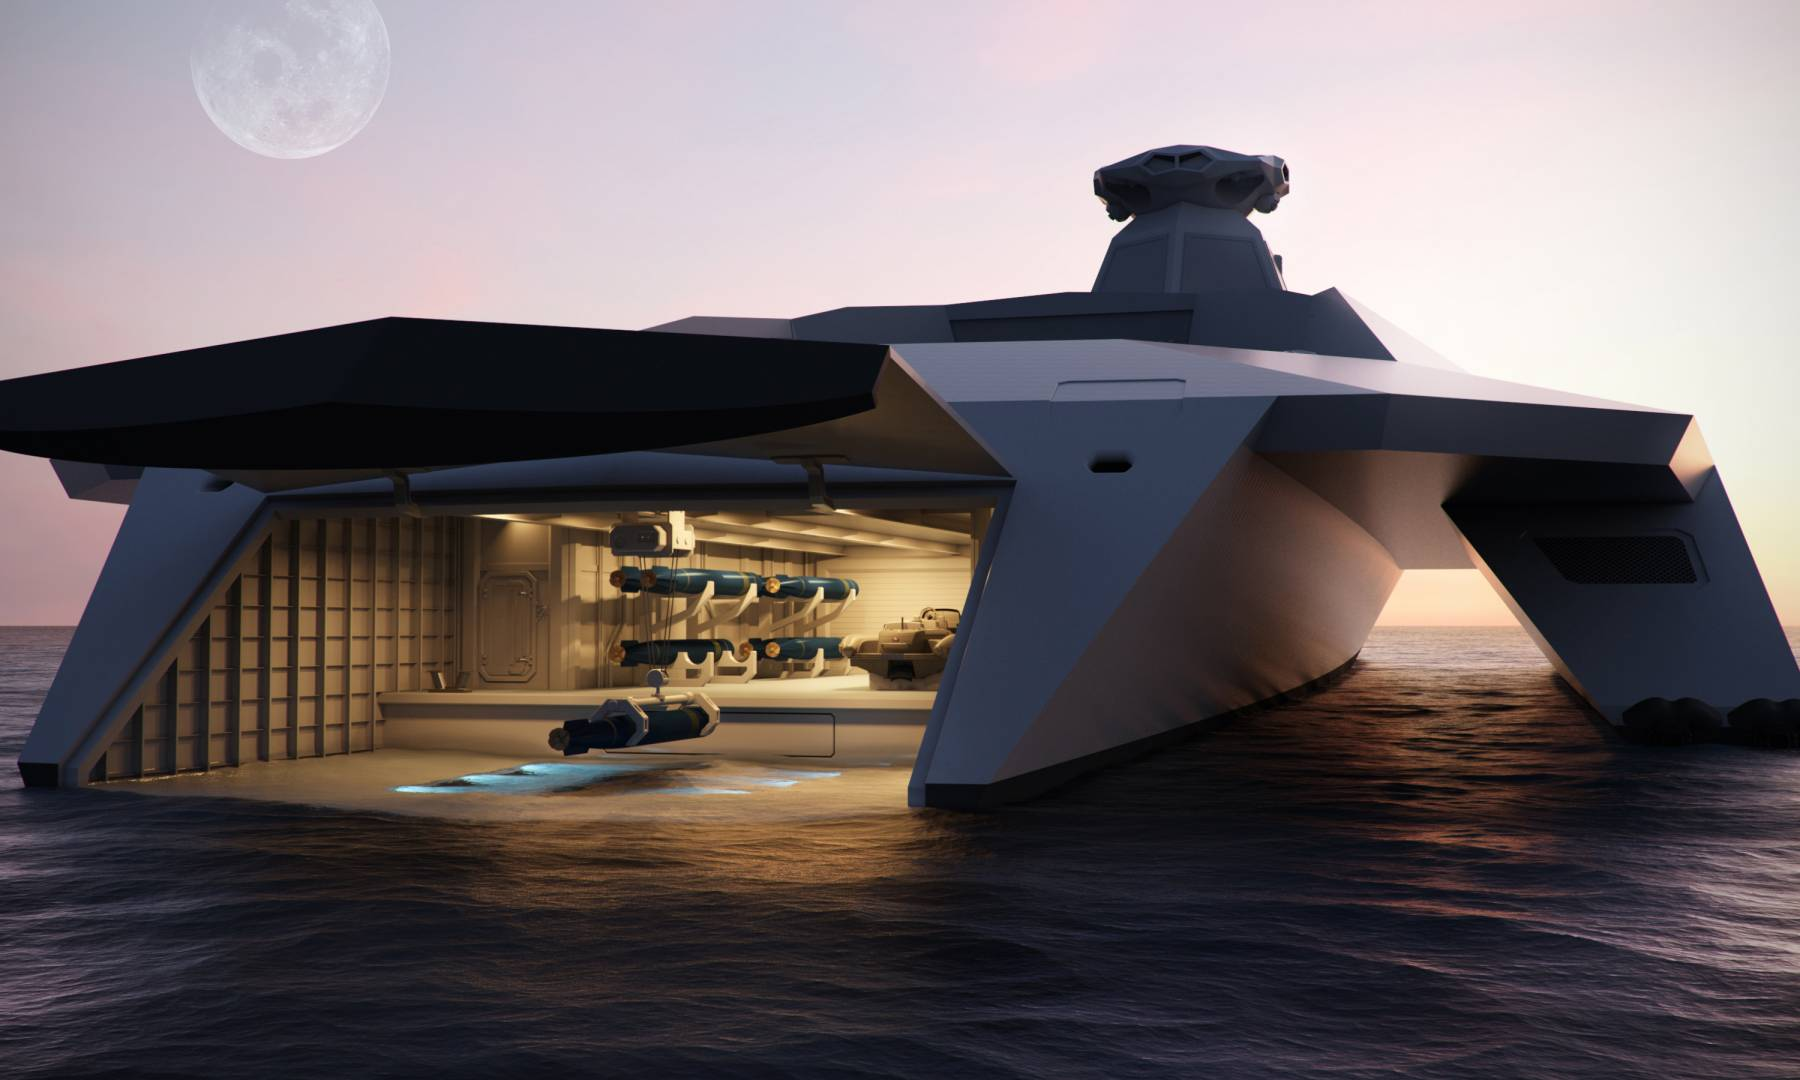 Startpoint Dreadnought T2050 Warship Transom Garage View (image courtesy of Startpoint).